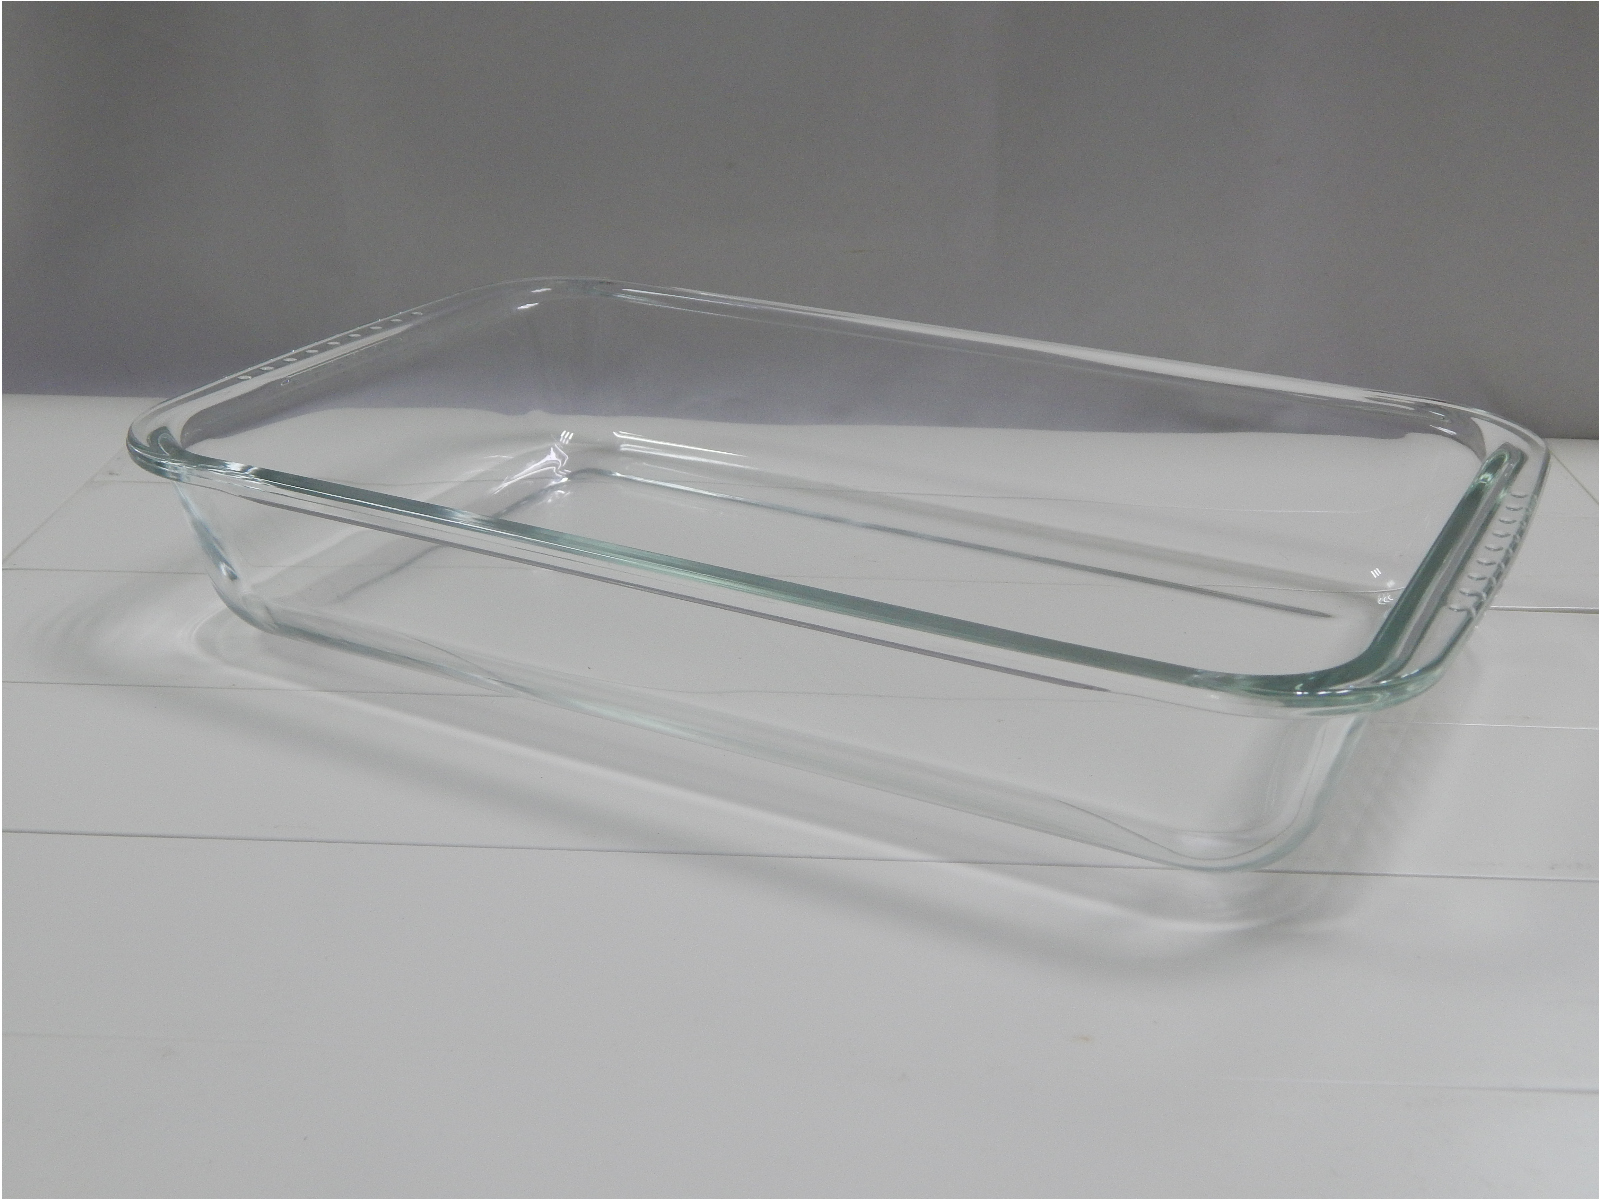 Easylock Oven Safe Glass Bakeware with Blue Plastic Lid